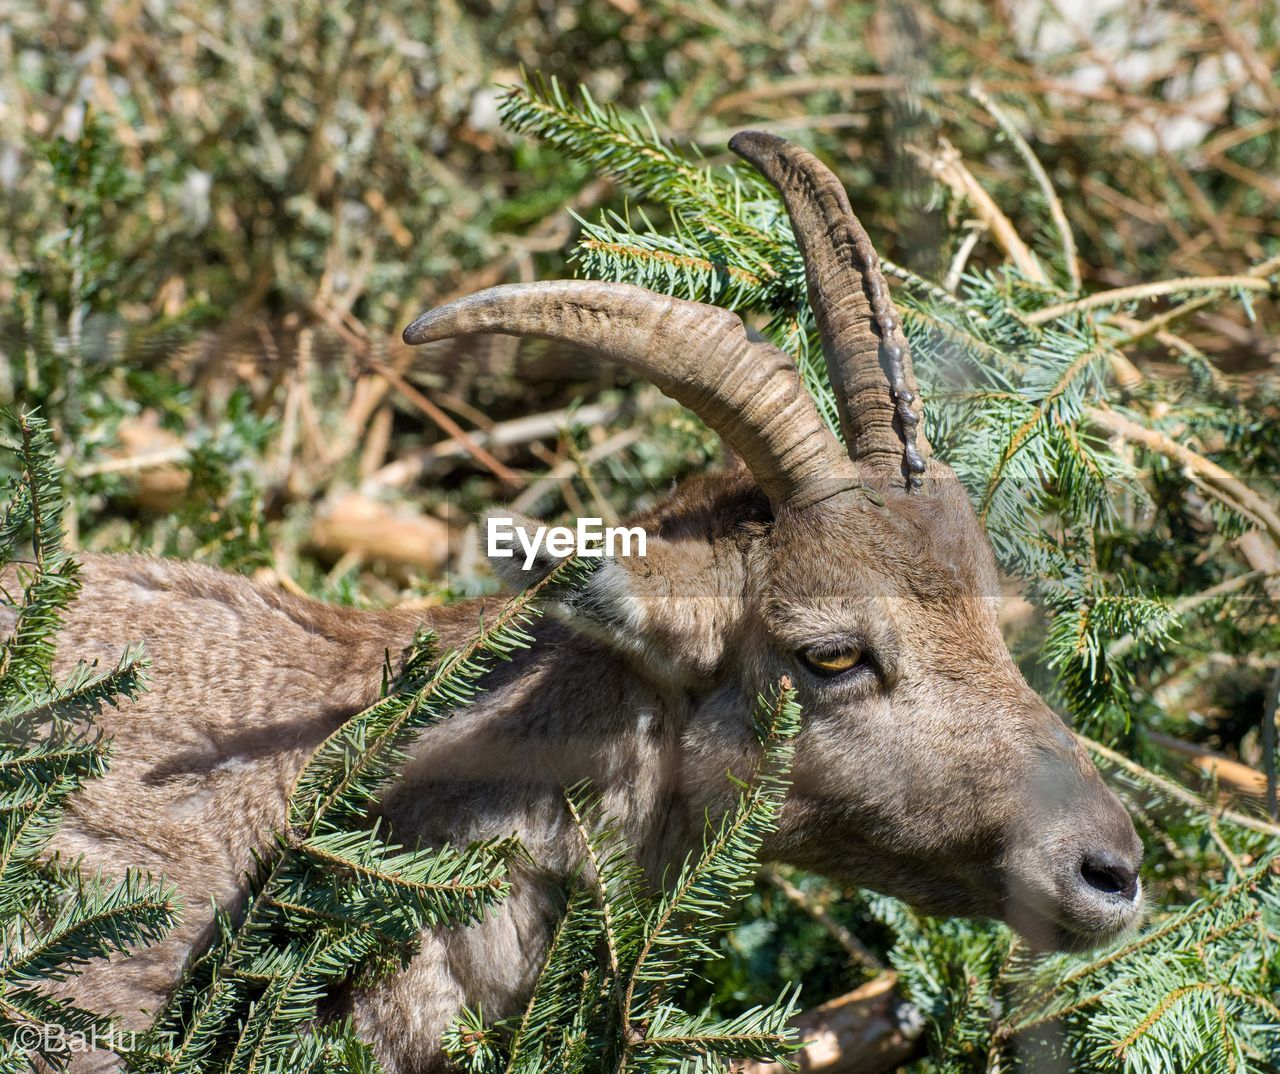 animal, animal themes, mammal, animal wildlife, one animal, plant, animals in the wild, no people, focus on foreground, nature, horned, vertebrate, domestic animals, day, outdoors, land, field, grass, animal body part, livestock, herbivorous, animal head